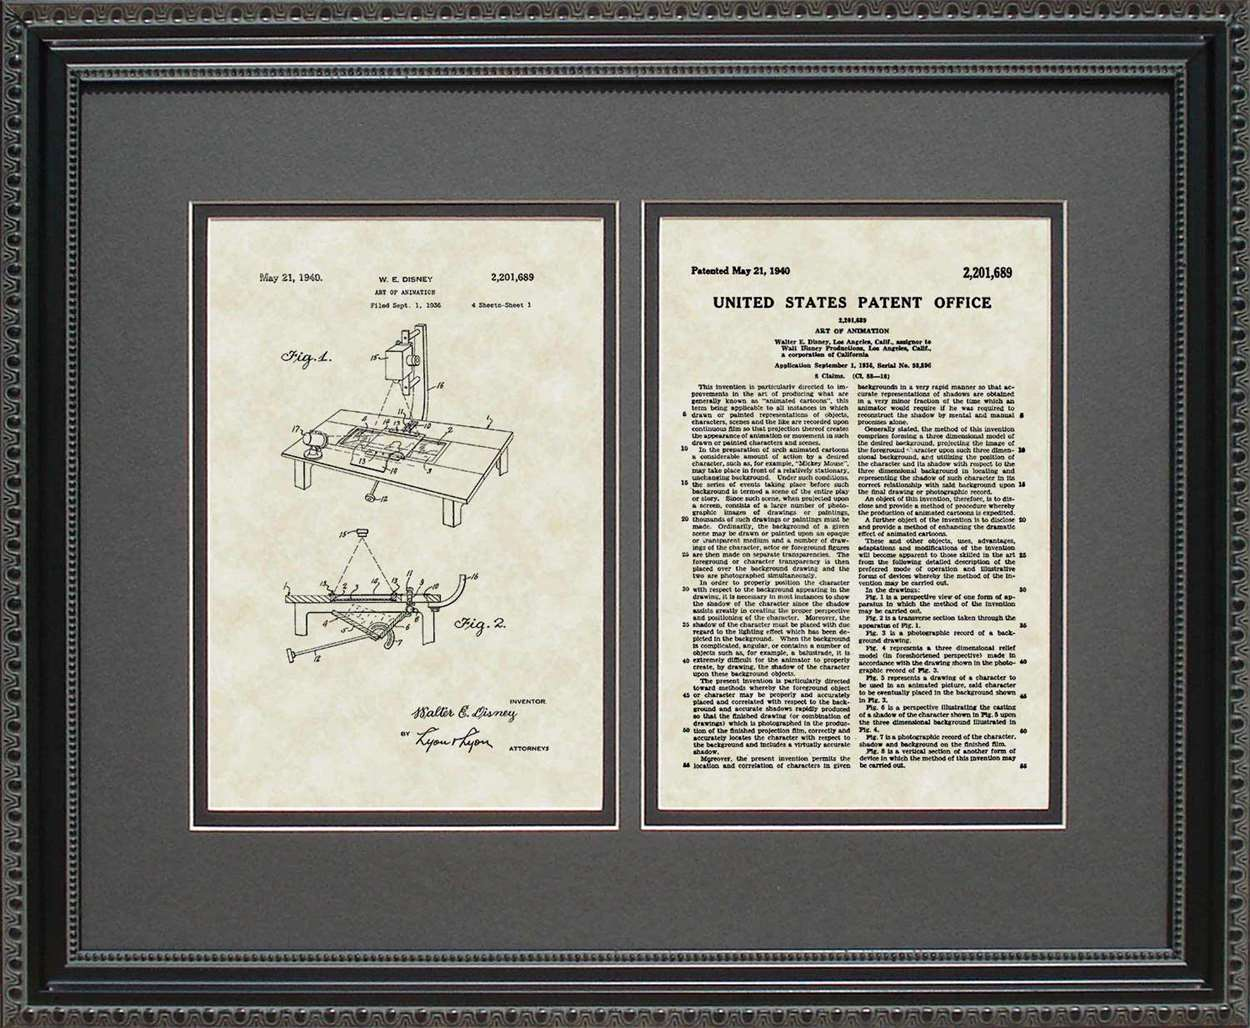 Art of Animation Patent, Art & Copy, Disney, 1940, 16x20